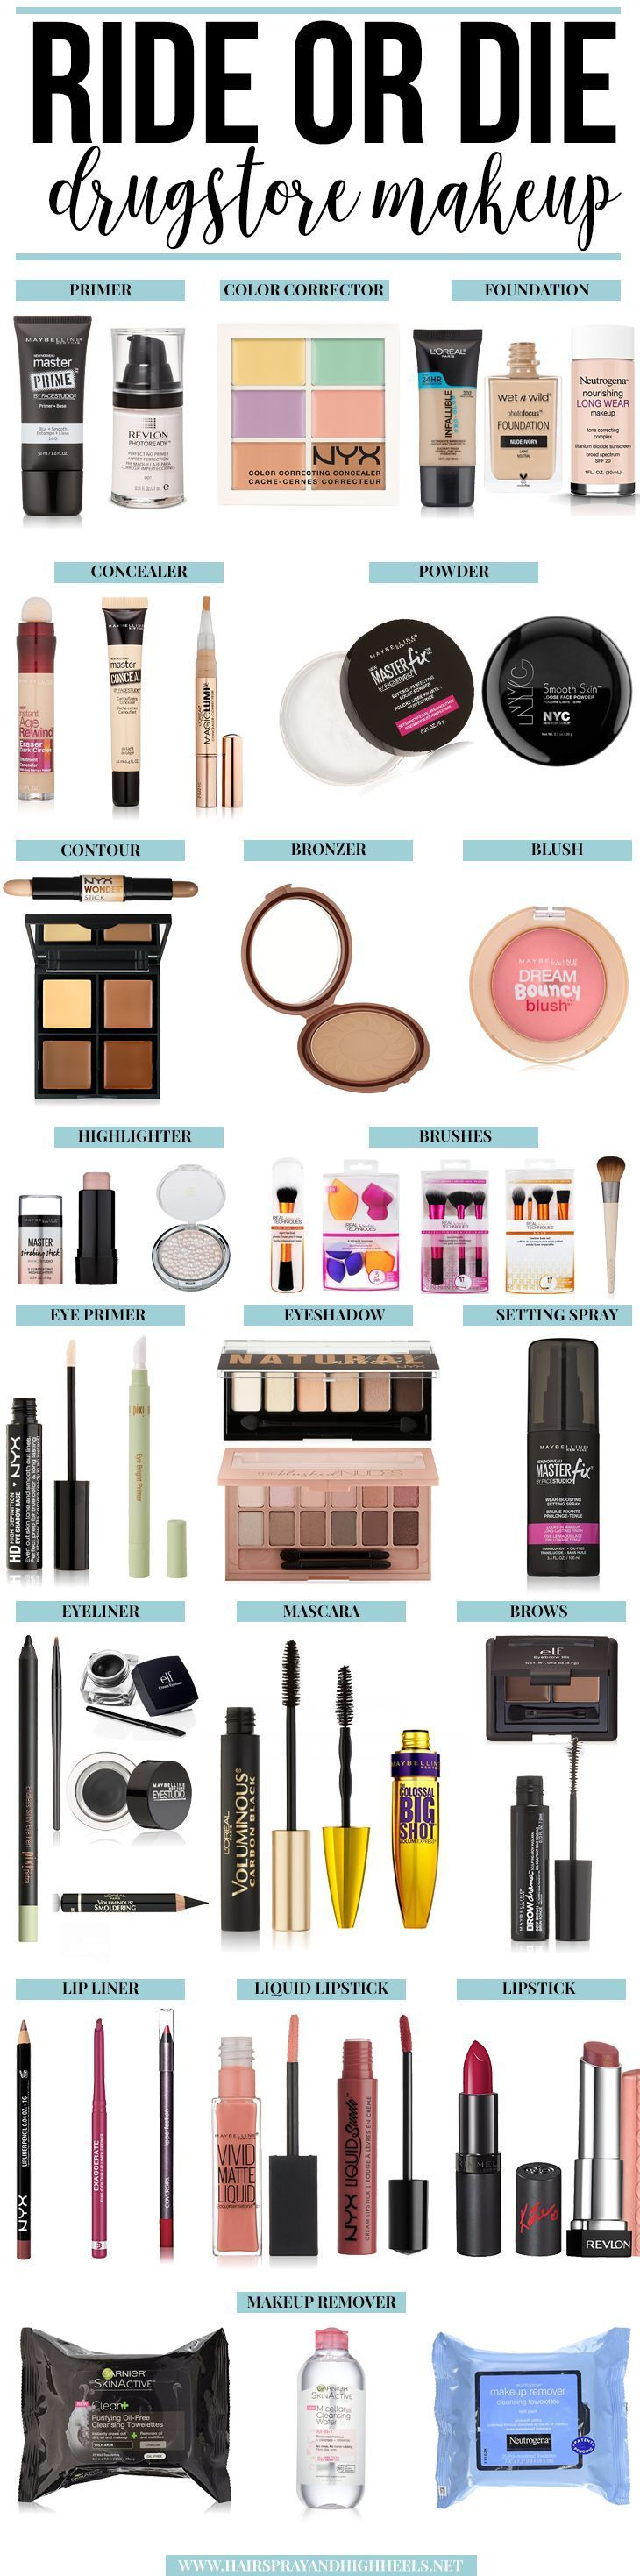 Are you in need of an updated makeup routine? Check out the Ride or Die Makeup products this blogger loves! Get started on your way to a new drugstore makeup kit. http://amzn.to/2tGTF0k